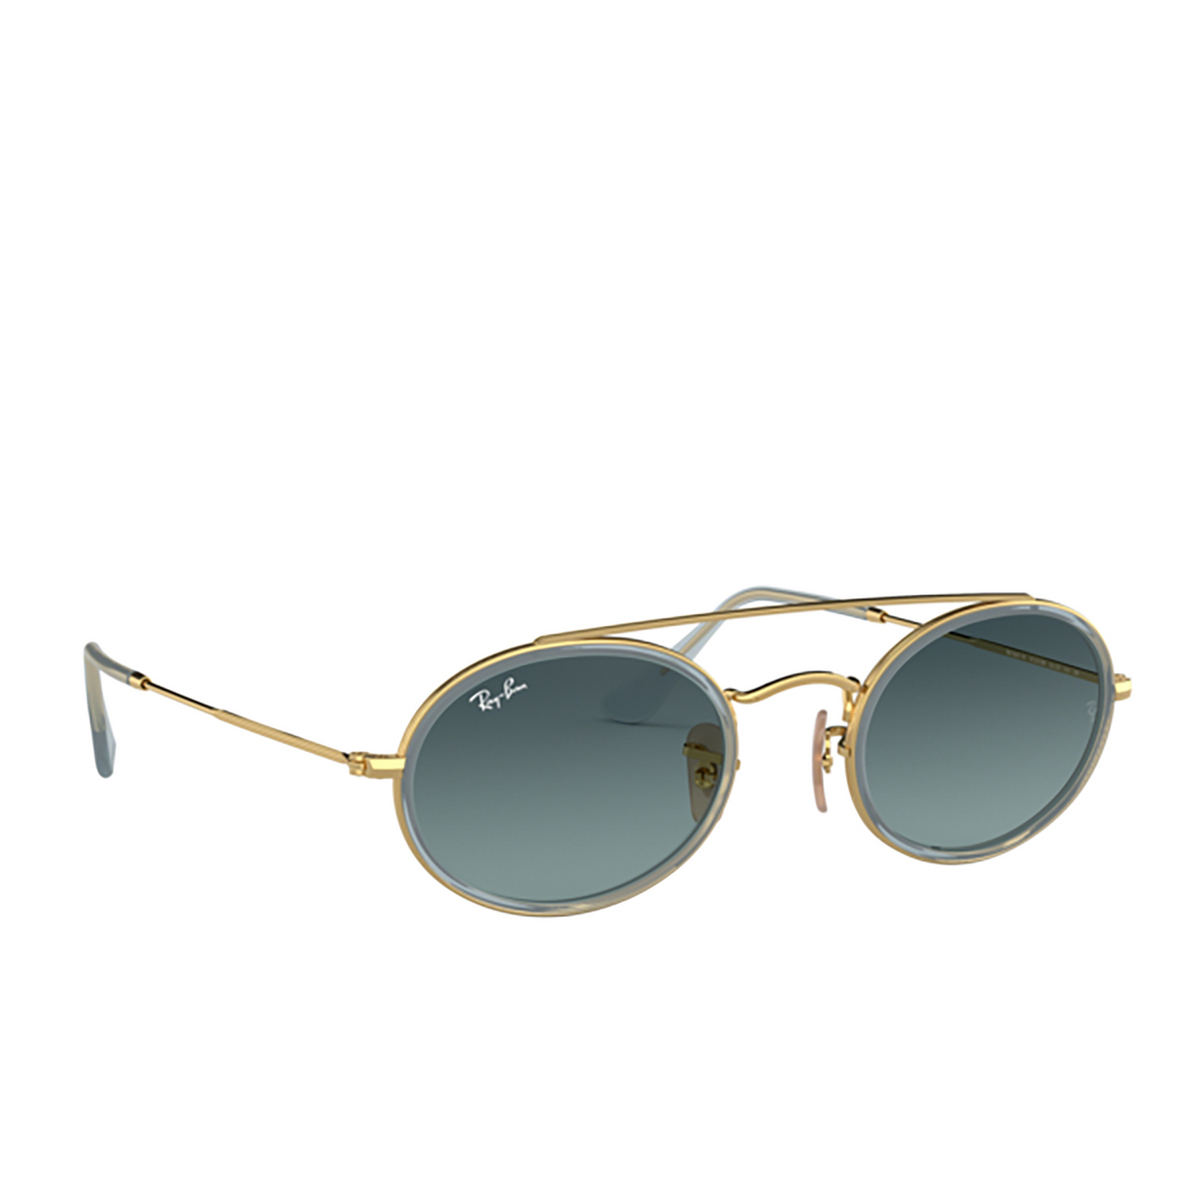 Ray-Ban® Oval Sunglasses: RB3847N color Arista 91233M - three-quarters view.